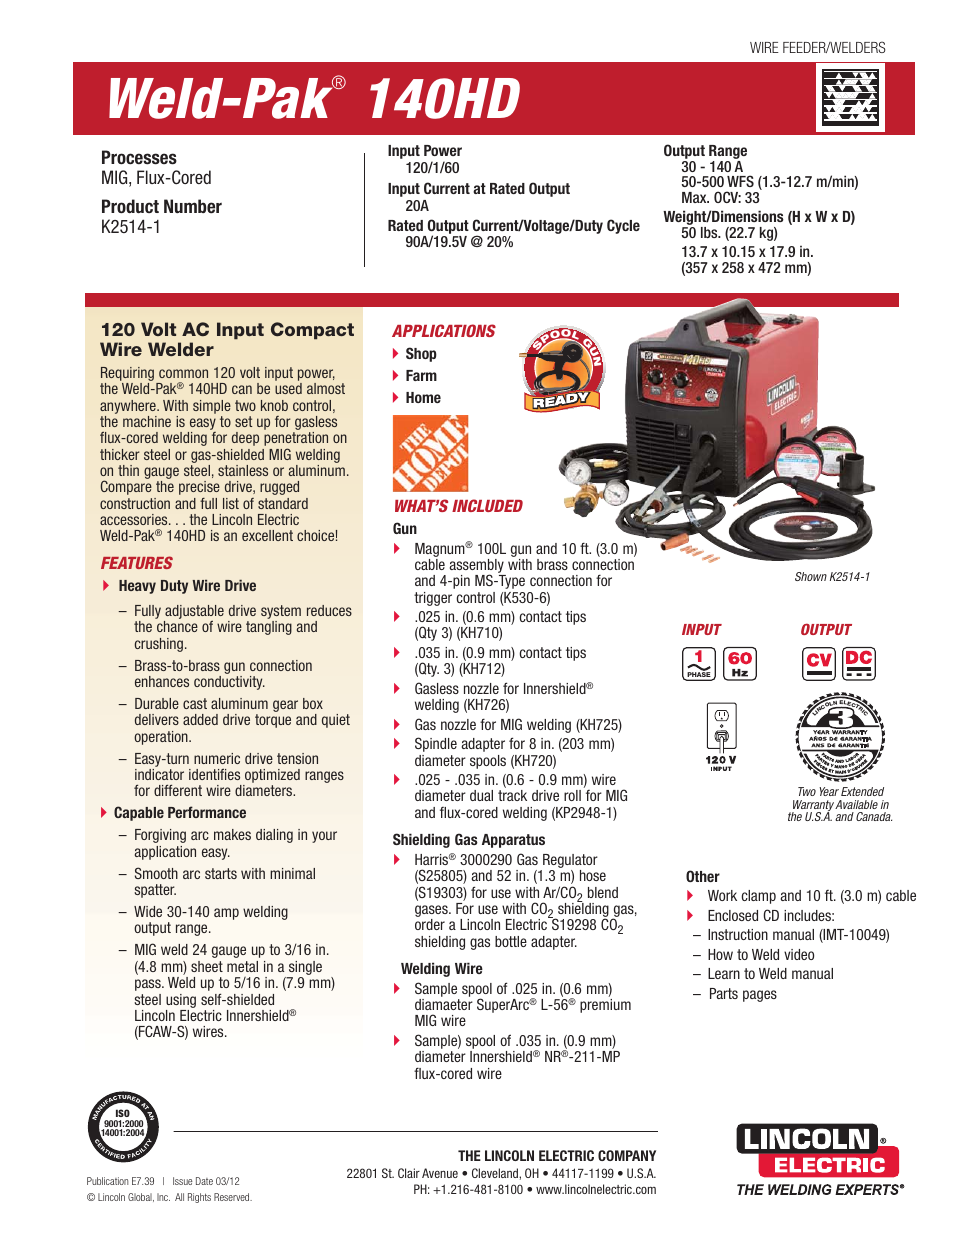 Lincoln Electric 140HD K2514-1 User Manual | 2 pages